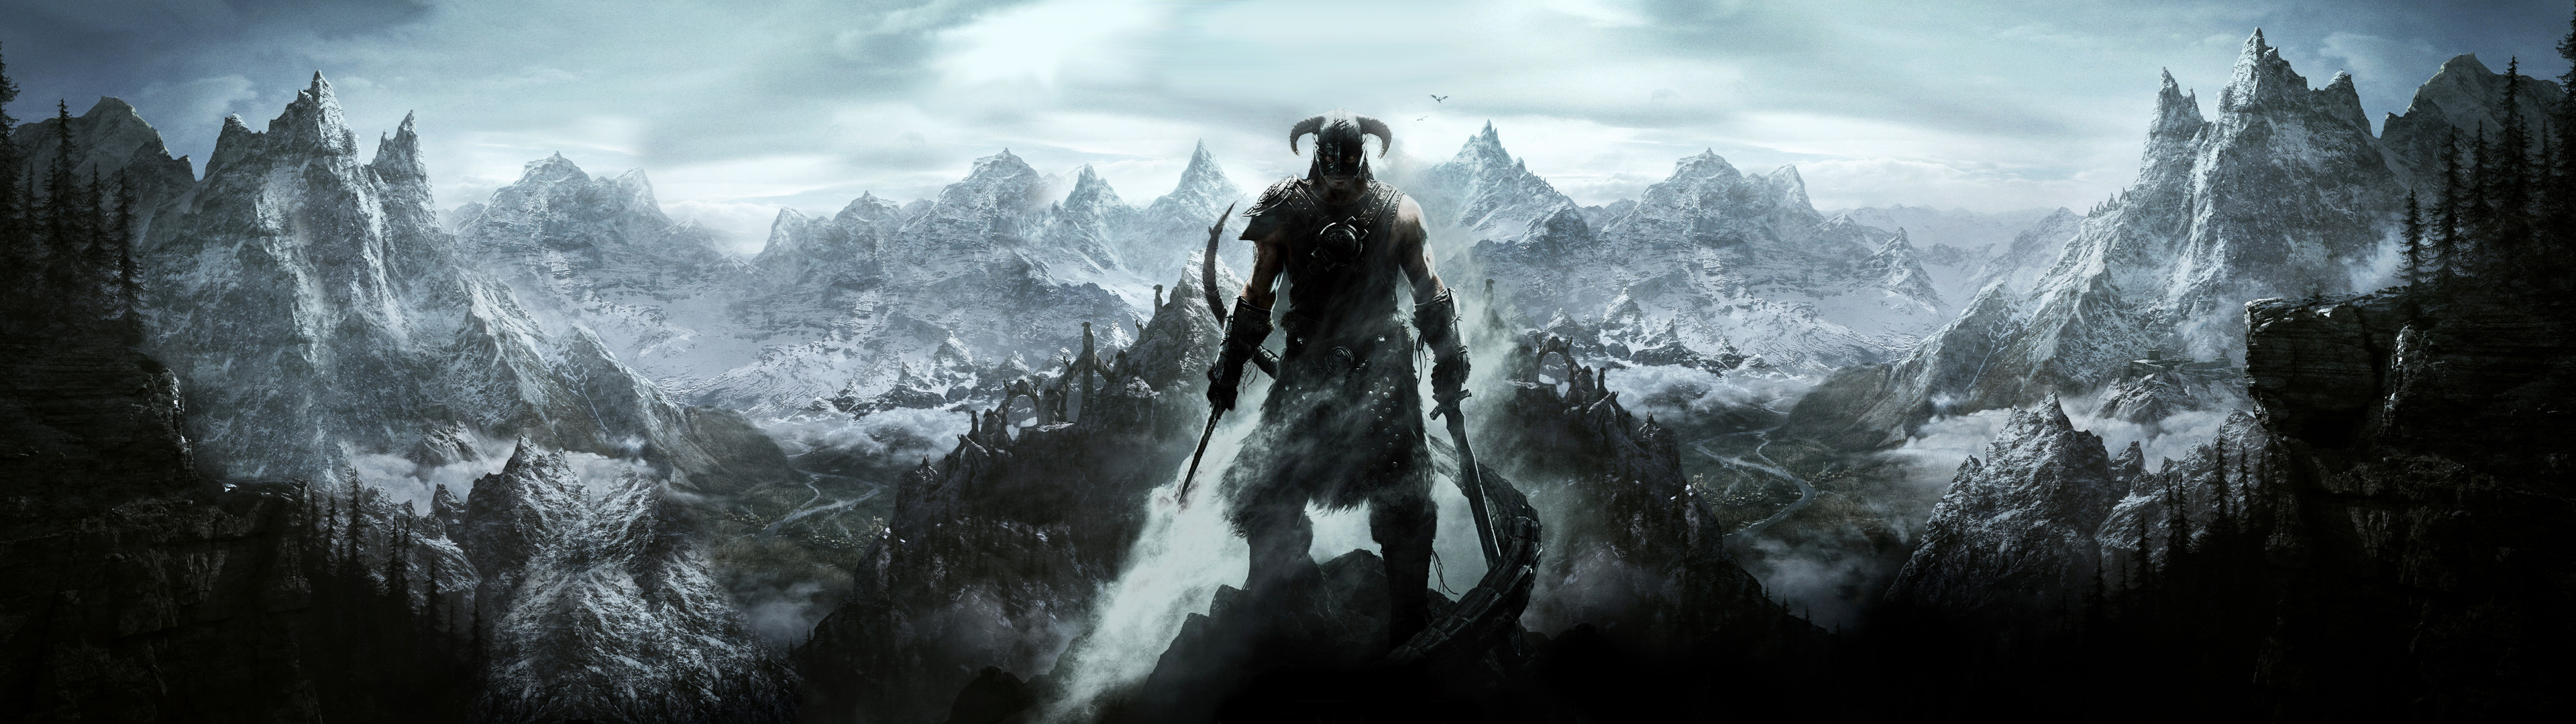 skyrim paint art wallpapers - photo #6